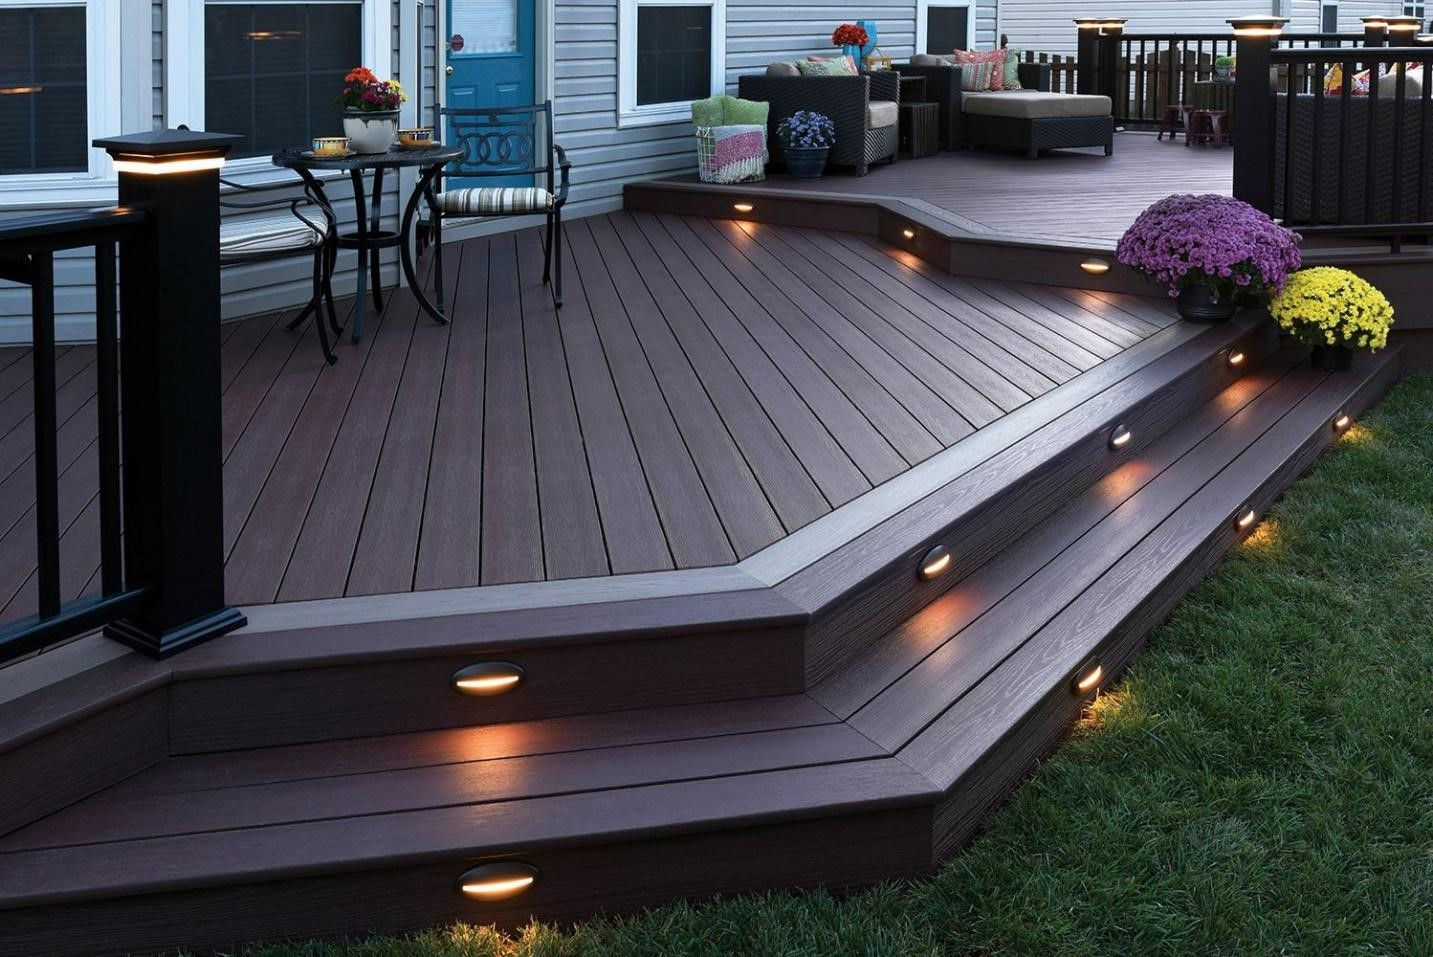 5.SIMPHOME.COM Sleek Modern Backyard Patio